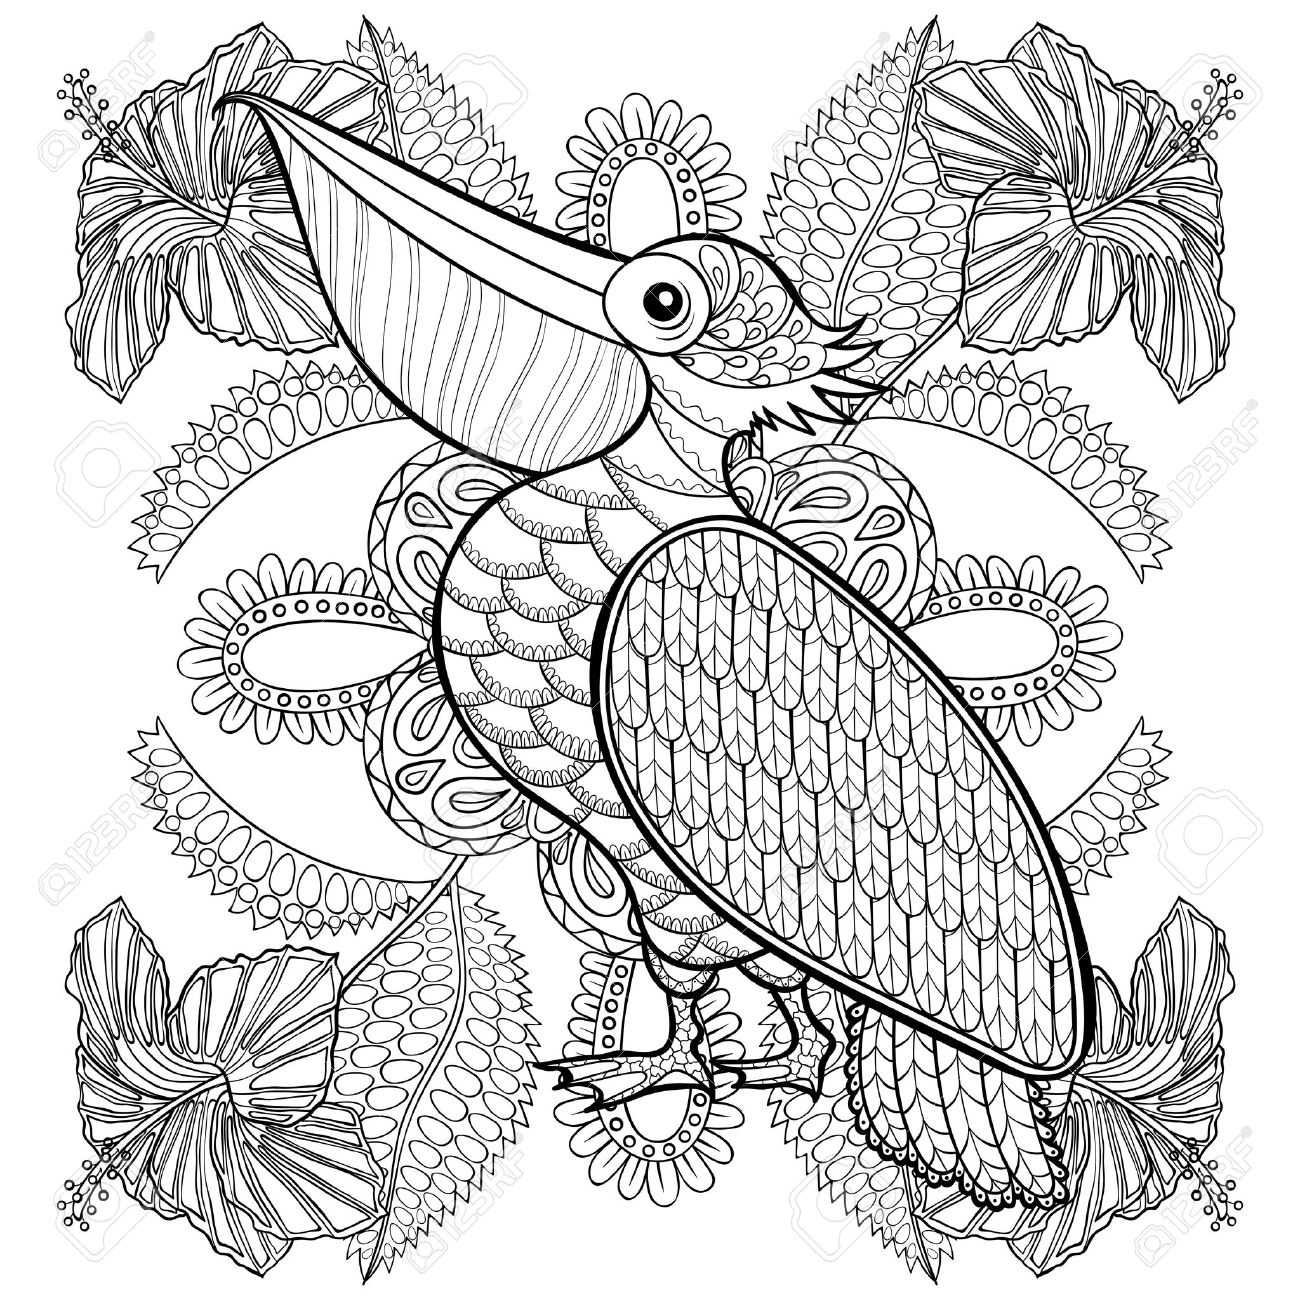 Coloring Page With Pelican In Hibiskus Flowers, Zentangle Illustartion For  Adult Coloring Books Or Tattoos